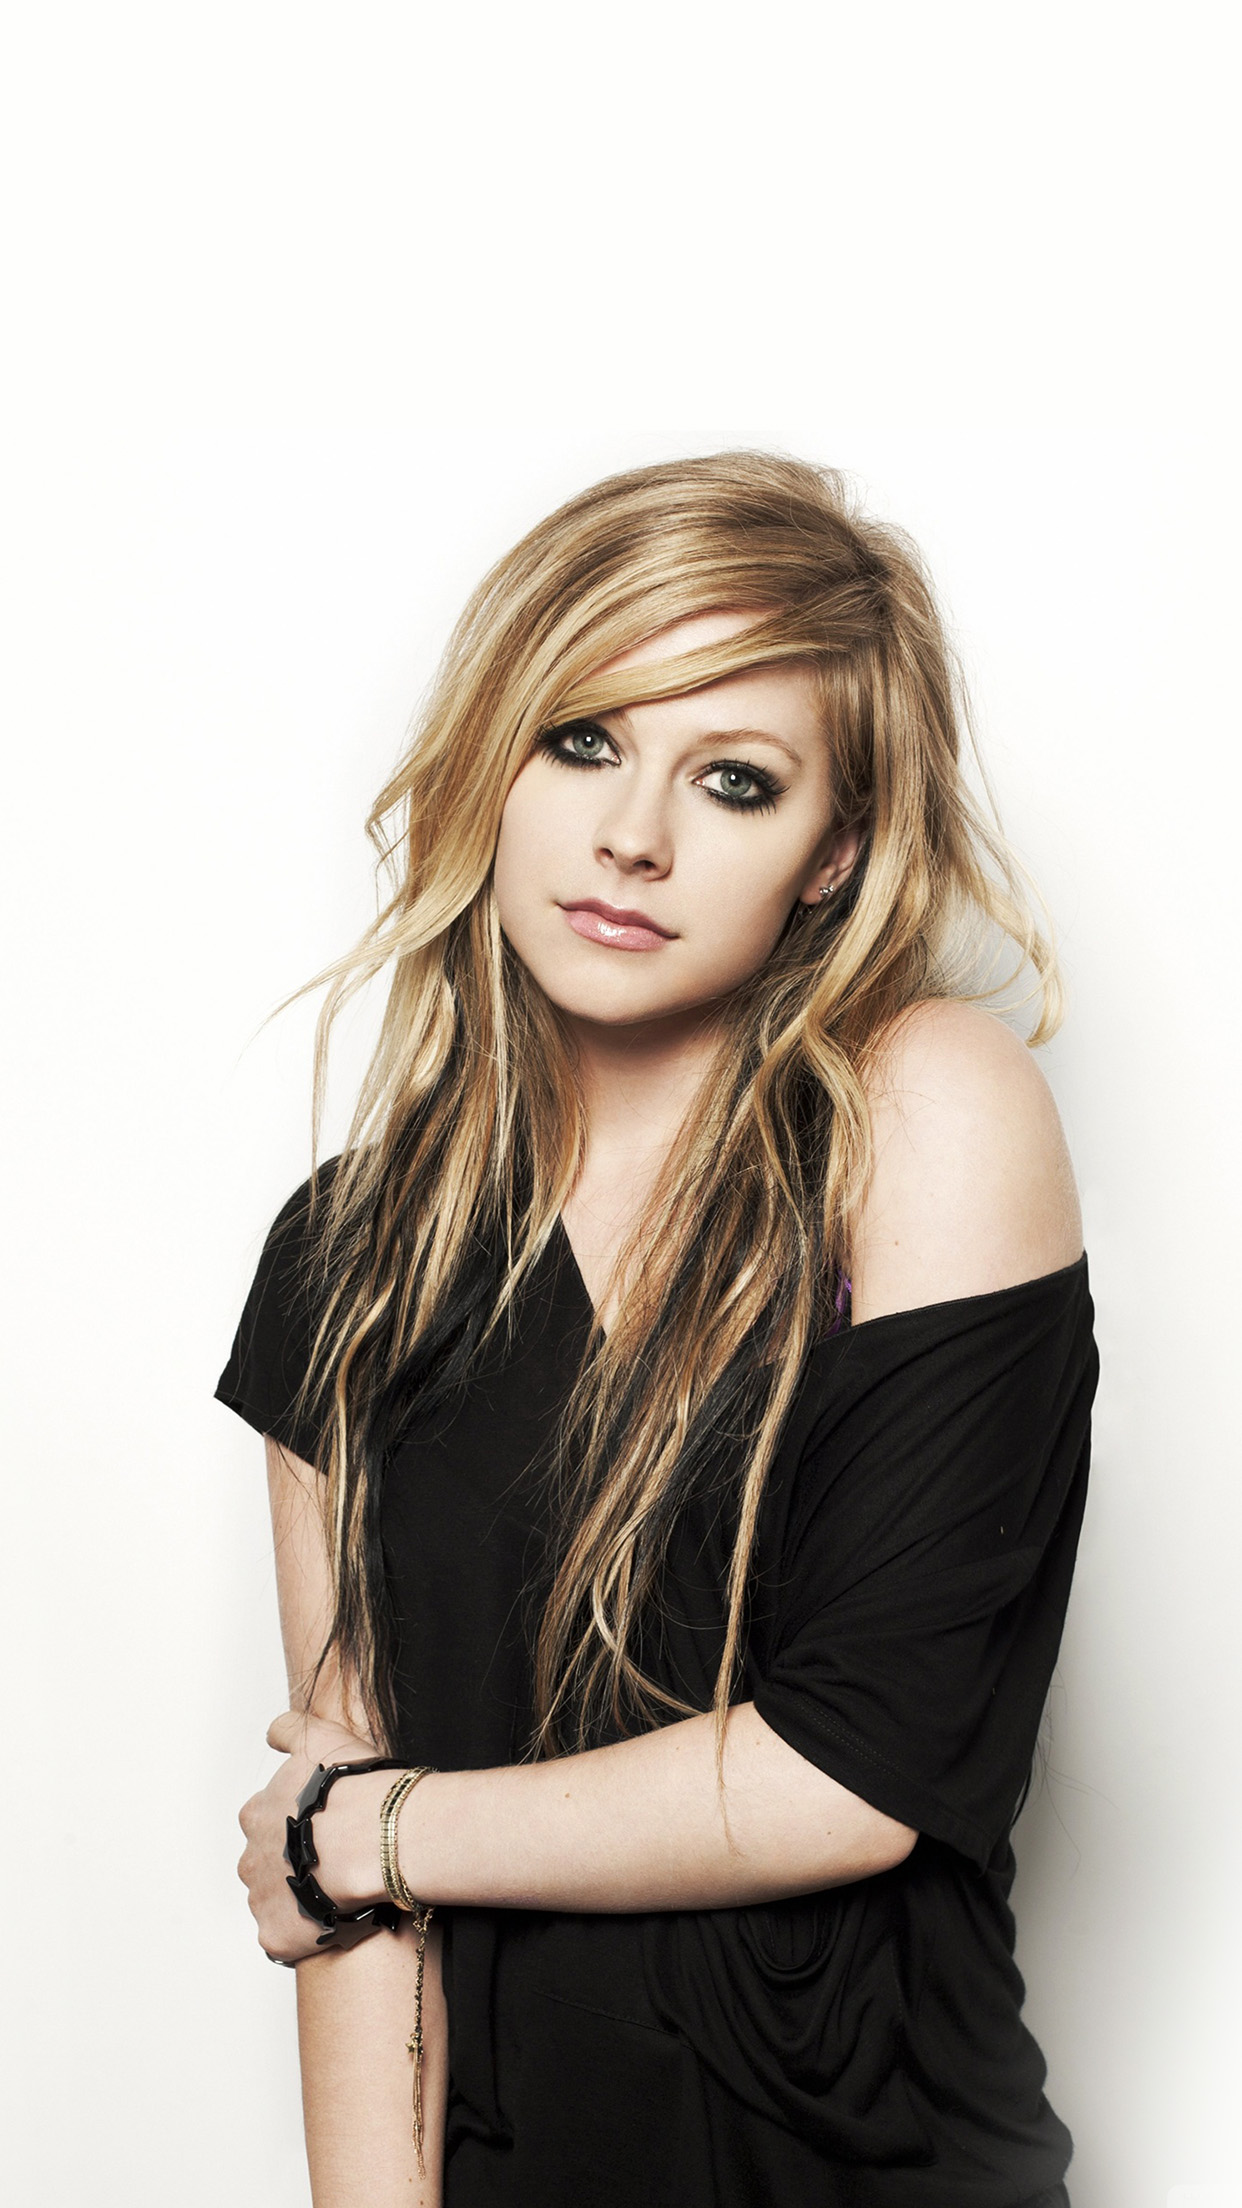 Lg Optimus Wallpaper Hd Hg32 Avril Lavigne Music Star Beauty Papers Co